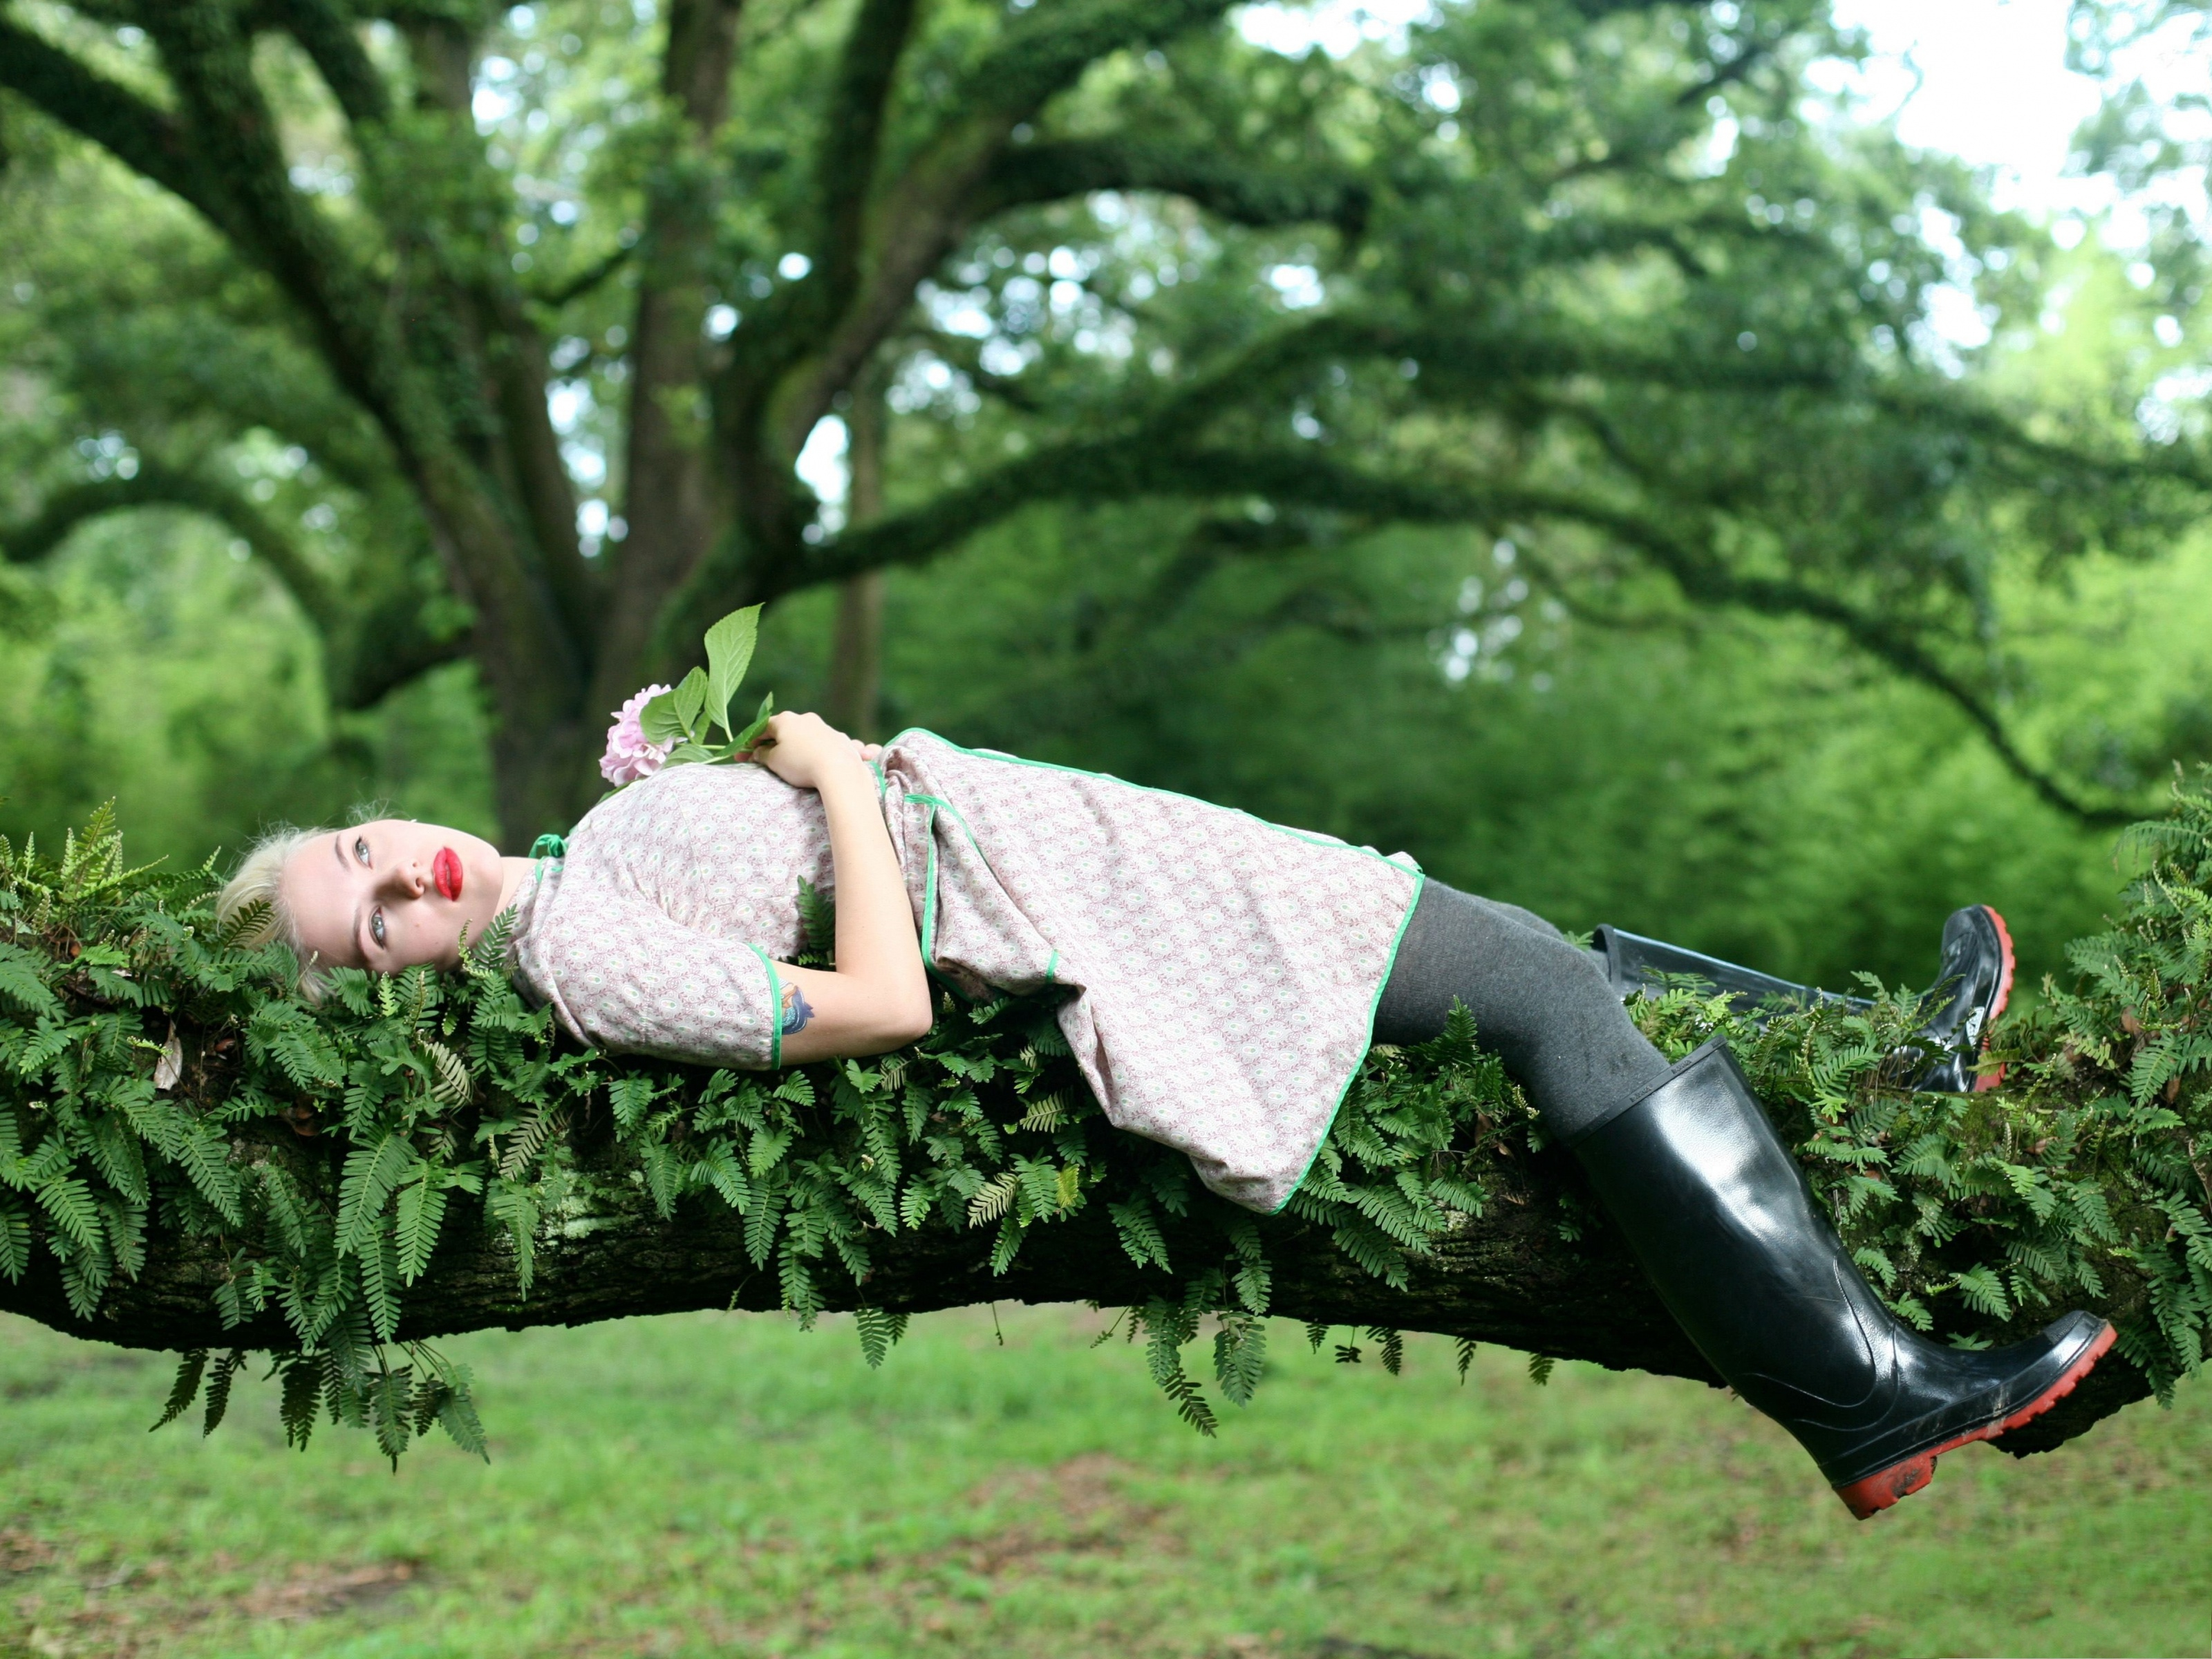 click to free download the wallpaper--Amazing Girls Picture, Lying on Tree Branch, in Rubber Boots 3200X2400 free wallpaper download